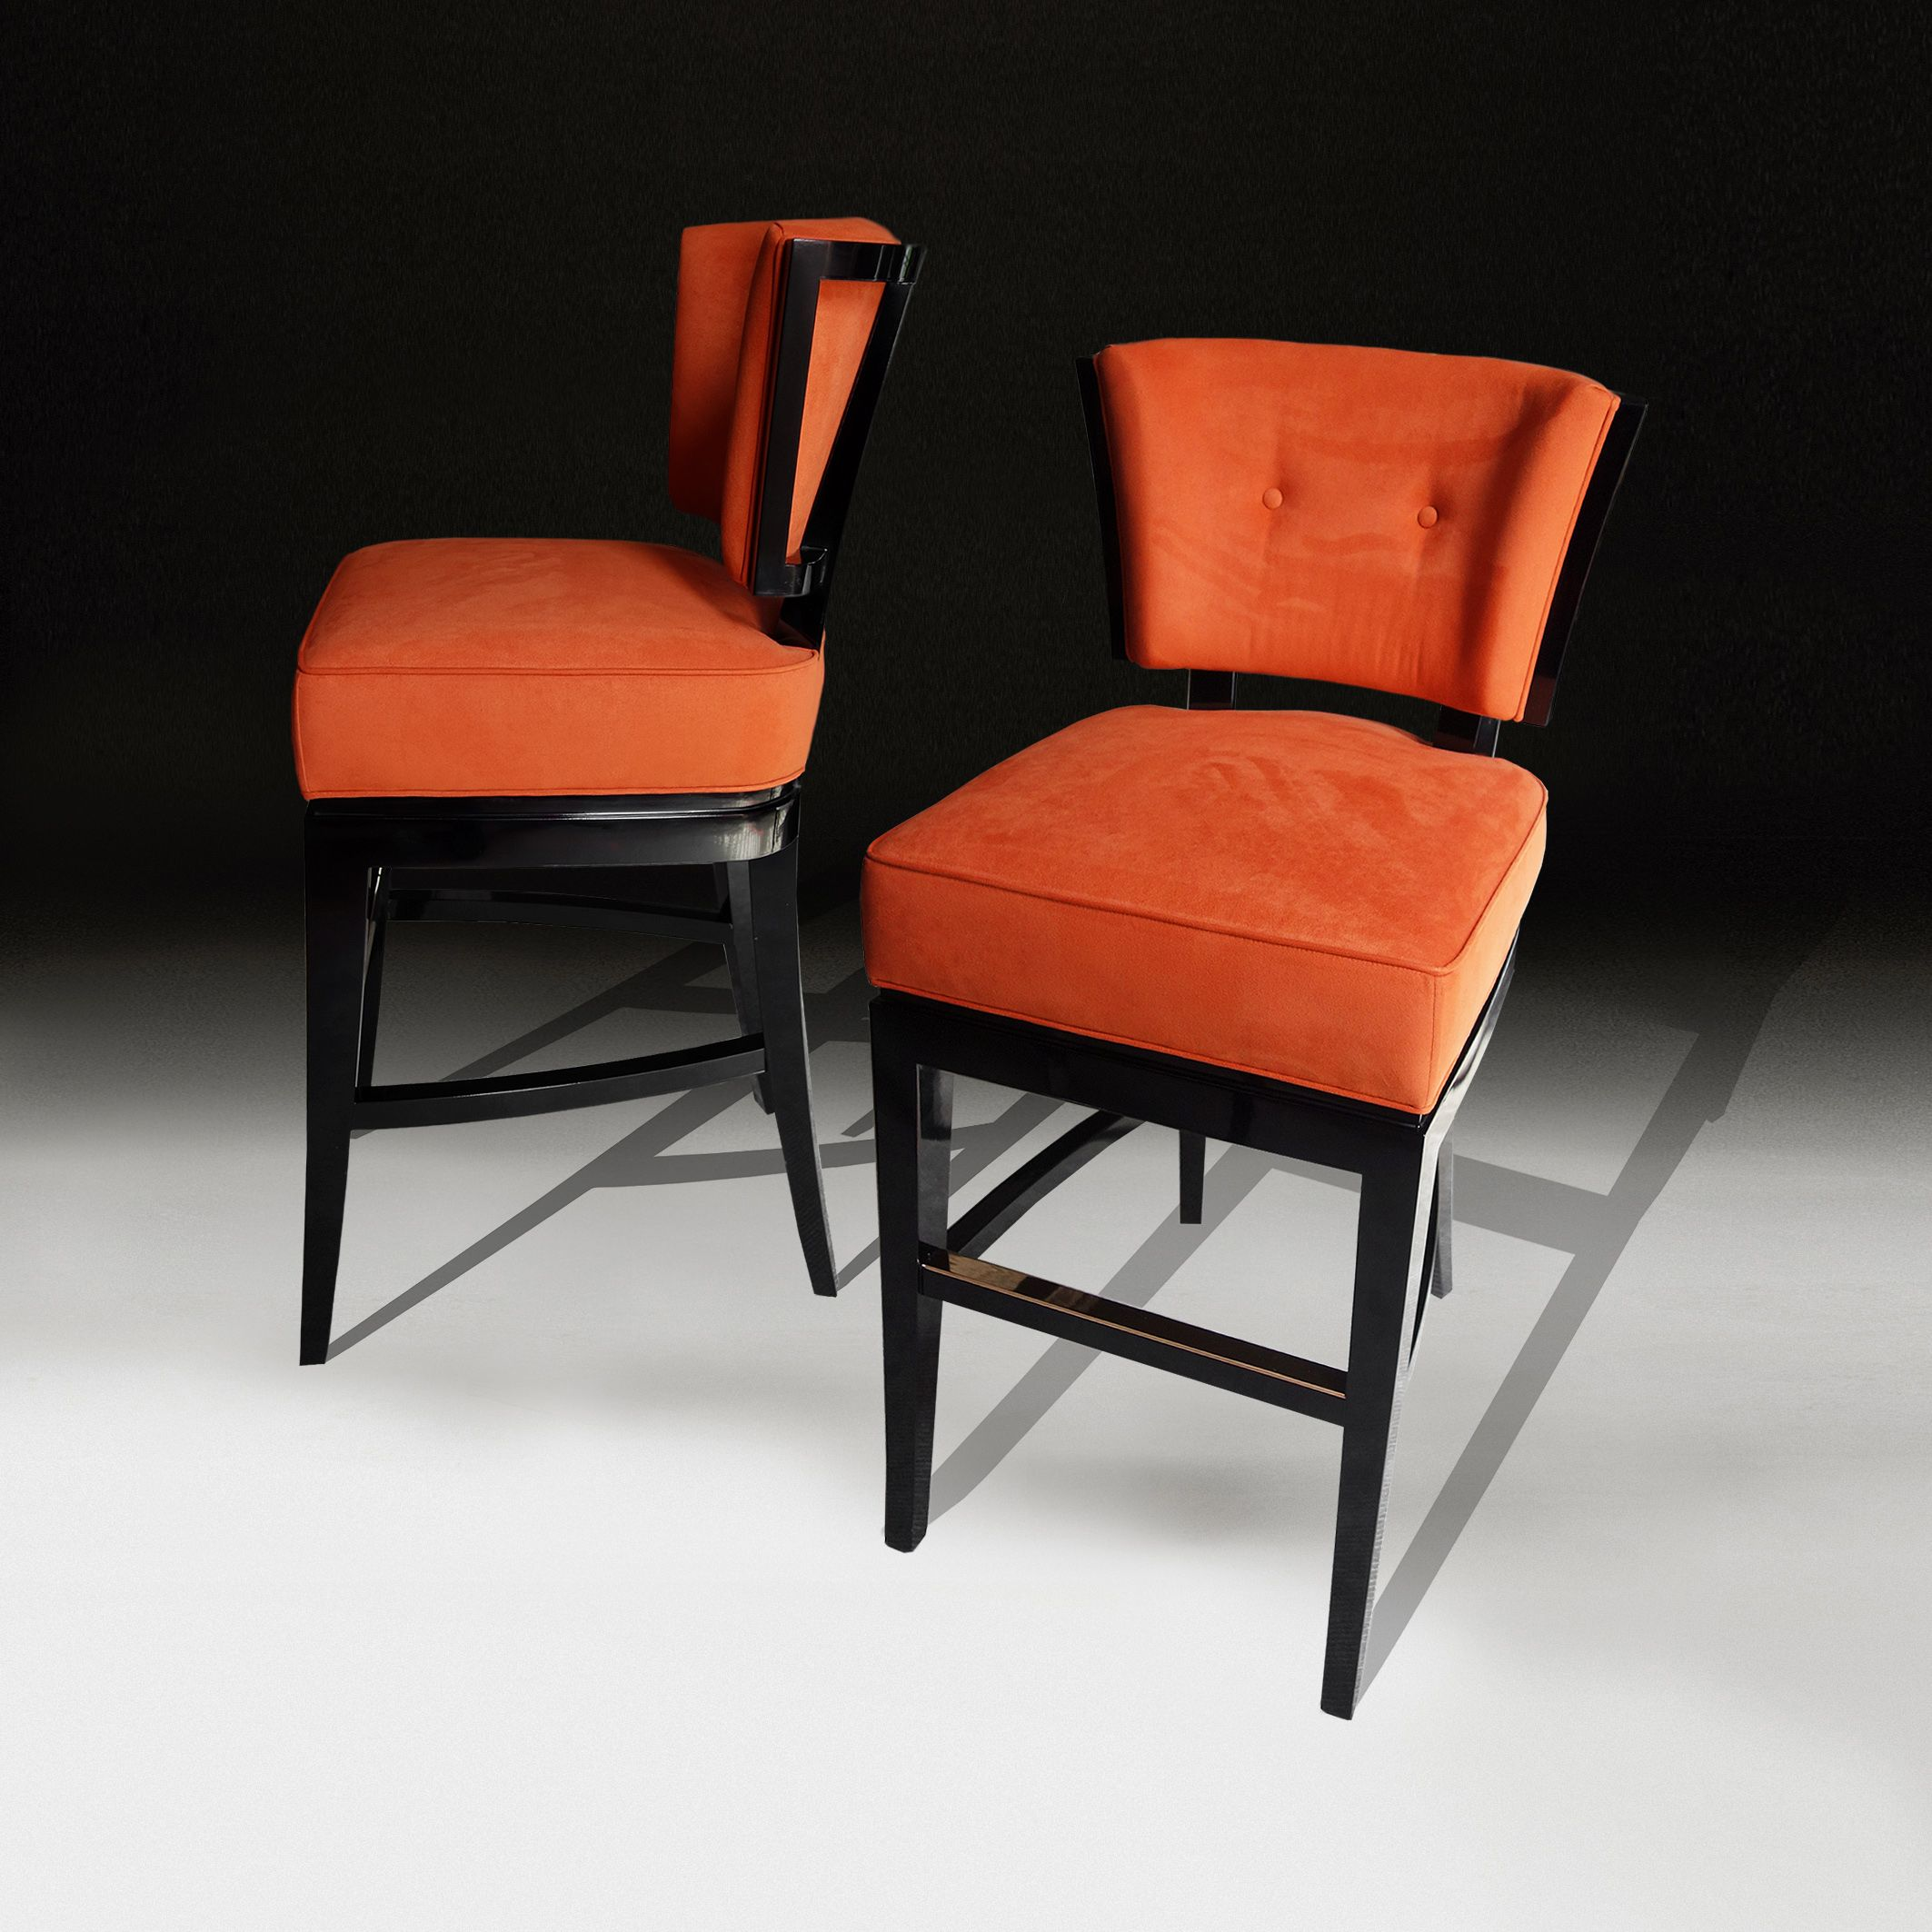 Bar stools in burnt orange suede with a black lacquer frame and bronze foot